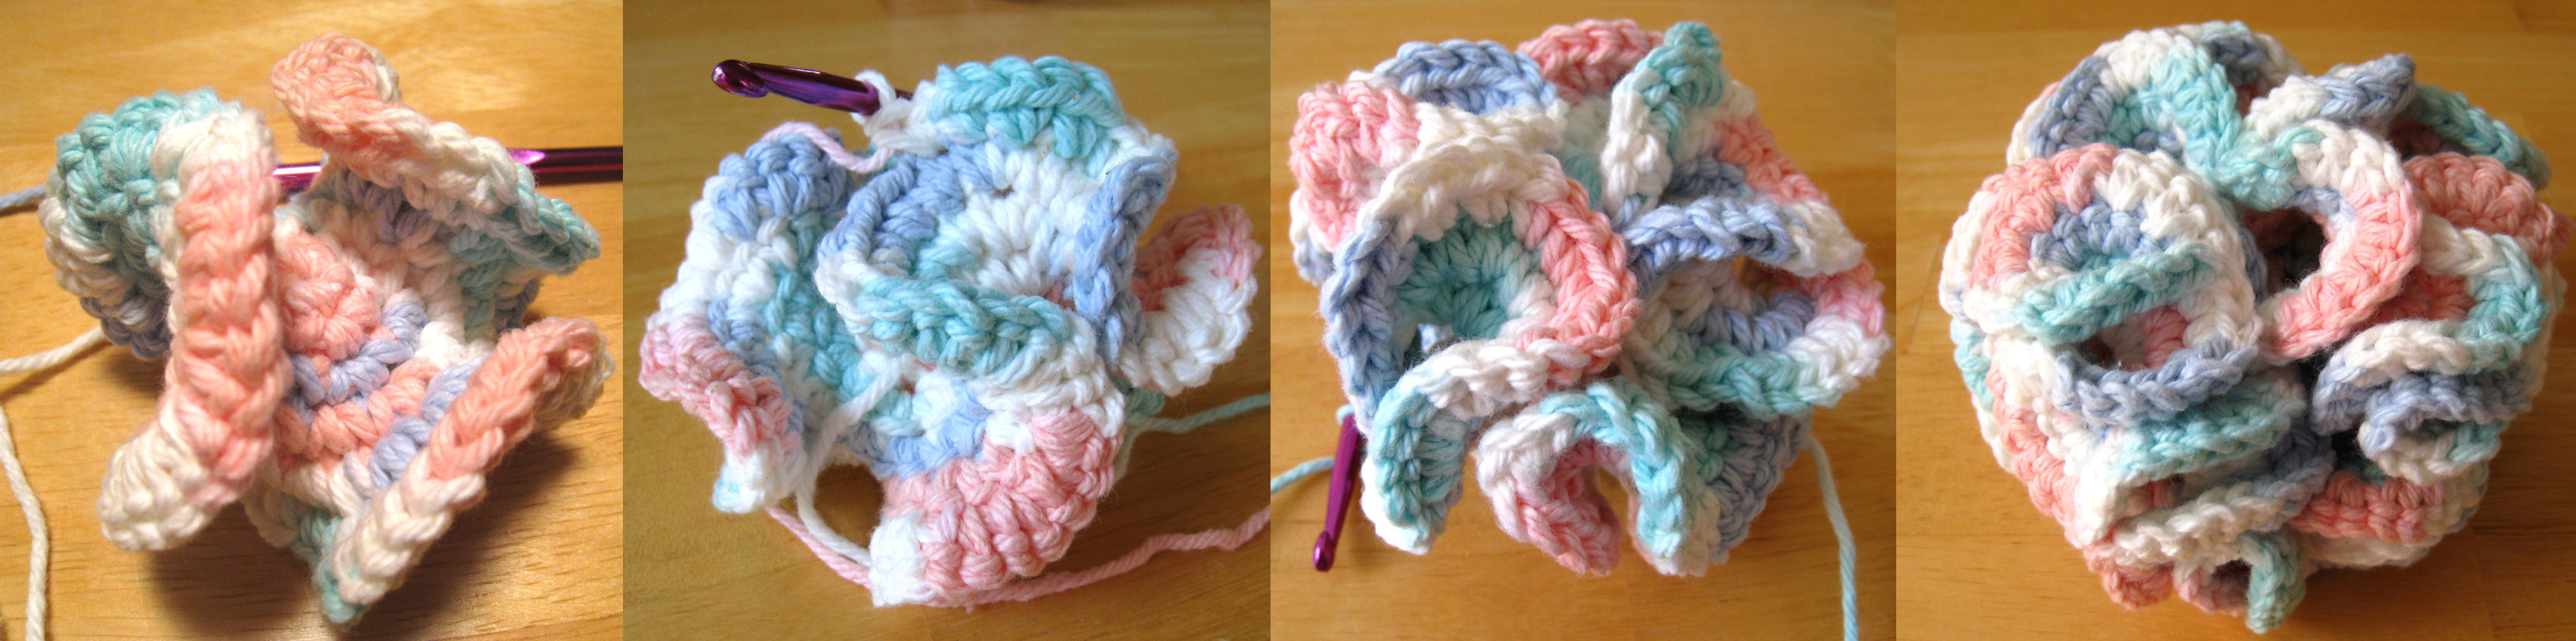 How to Crochet a Bath Puff 7 Steps with wikiHow